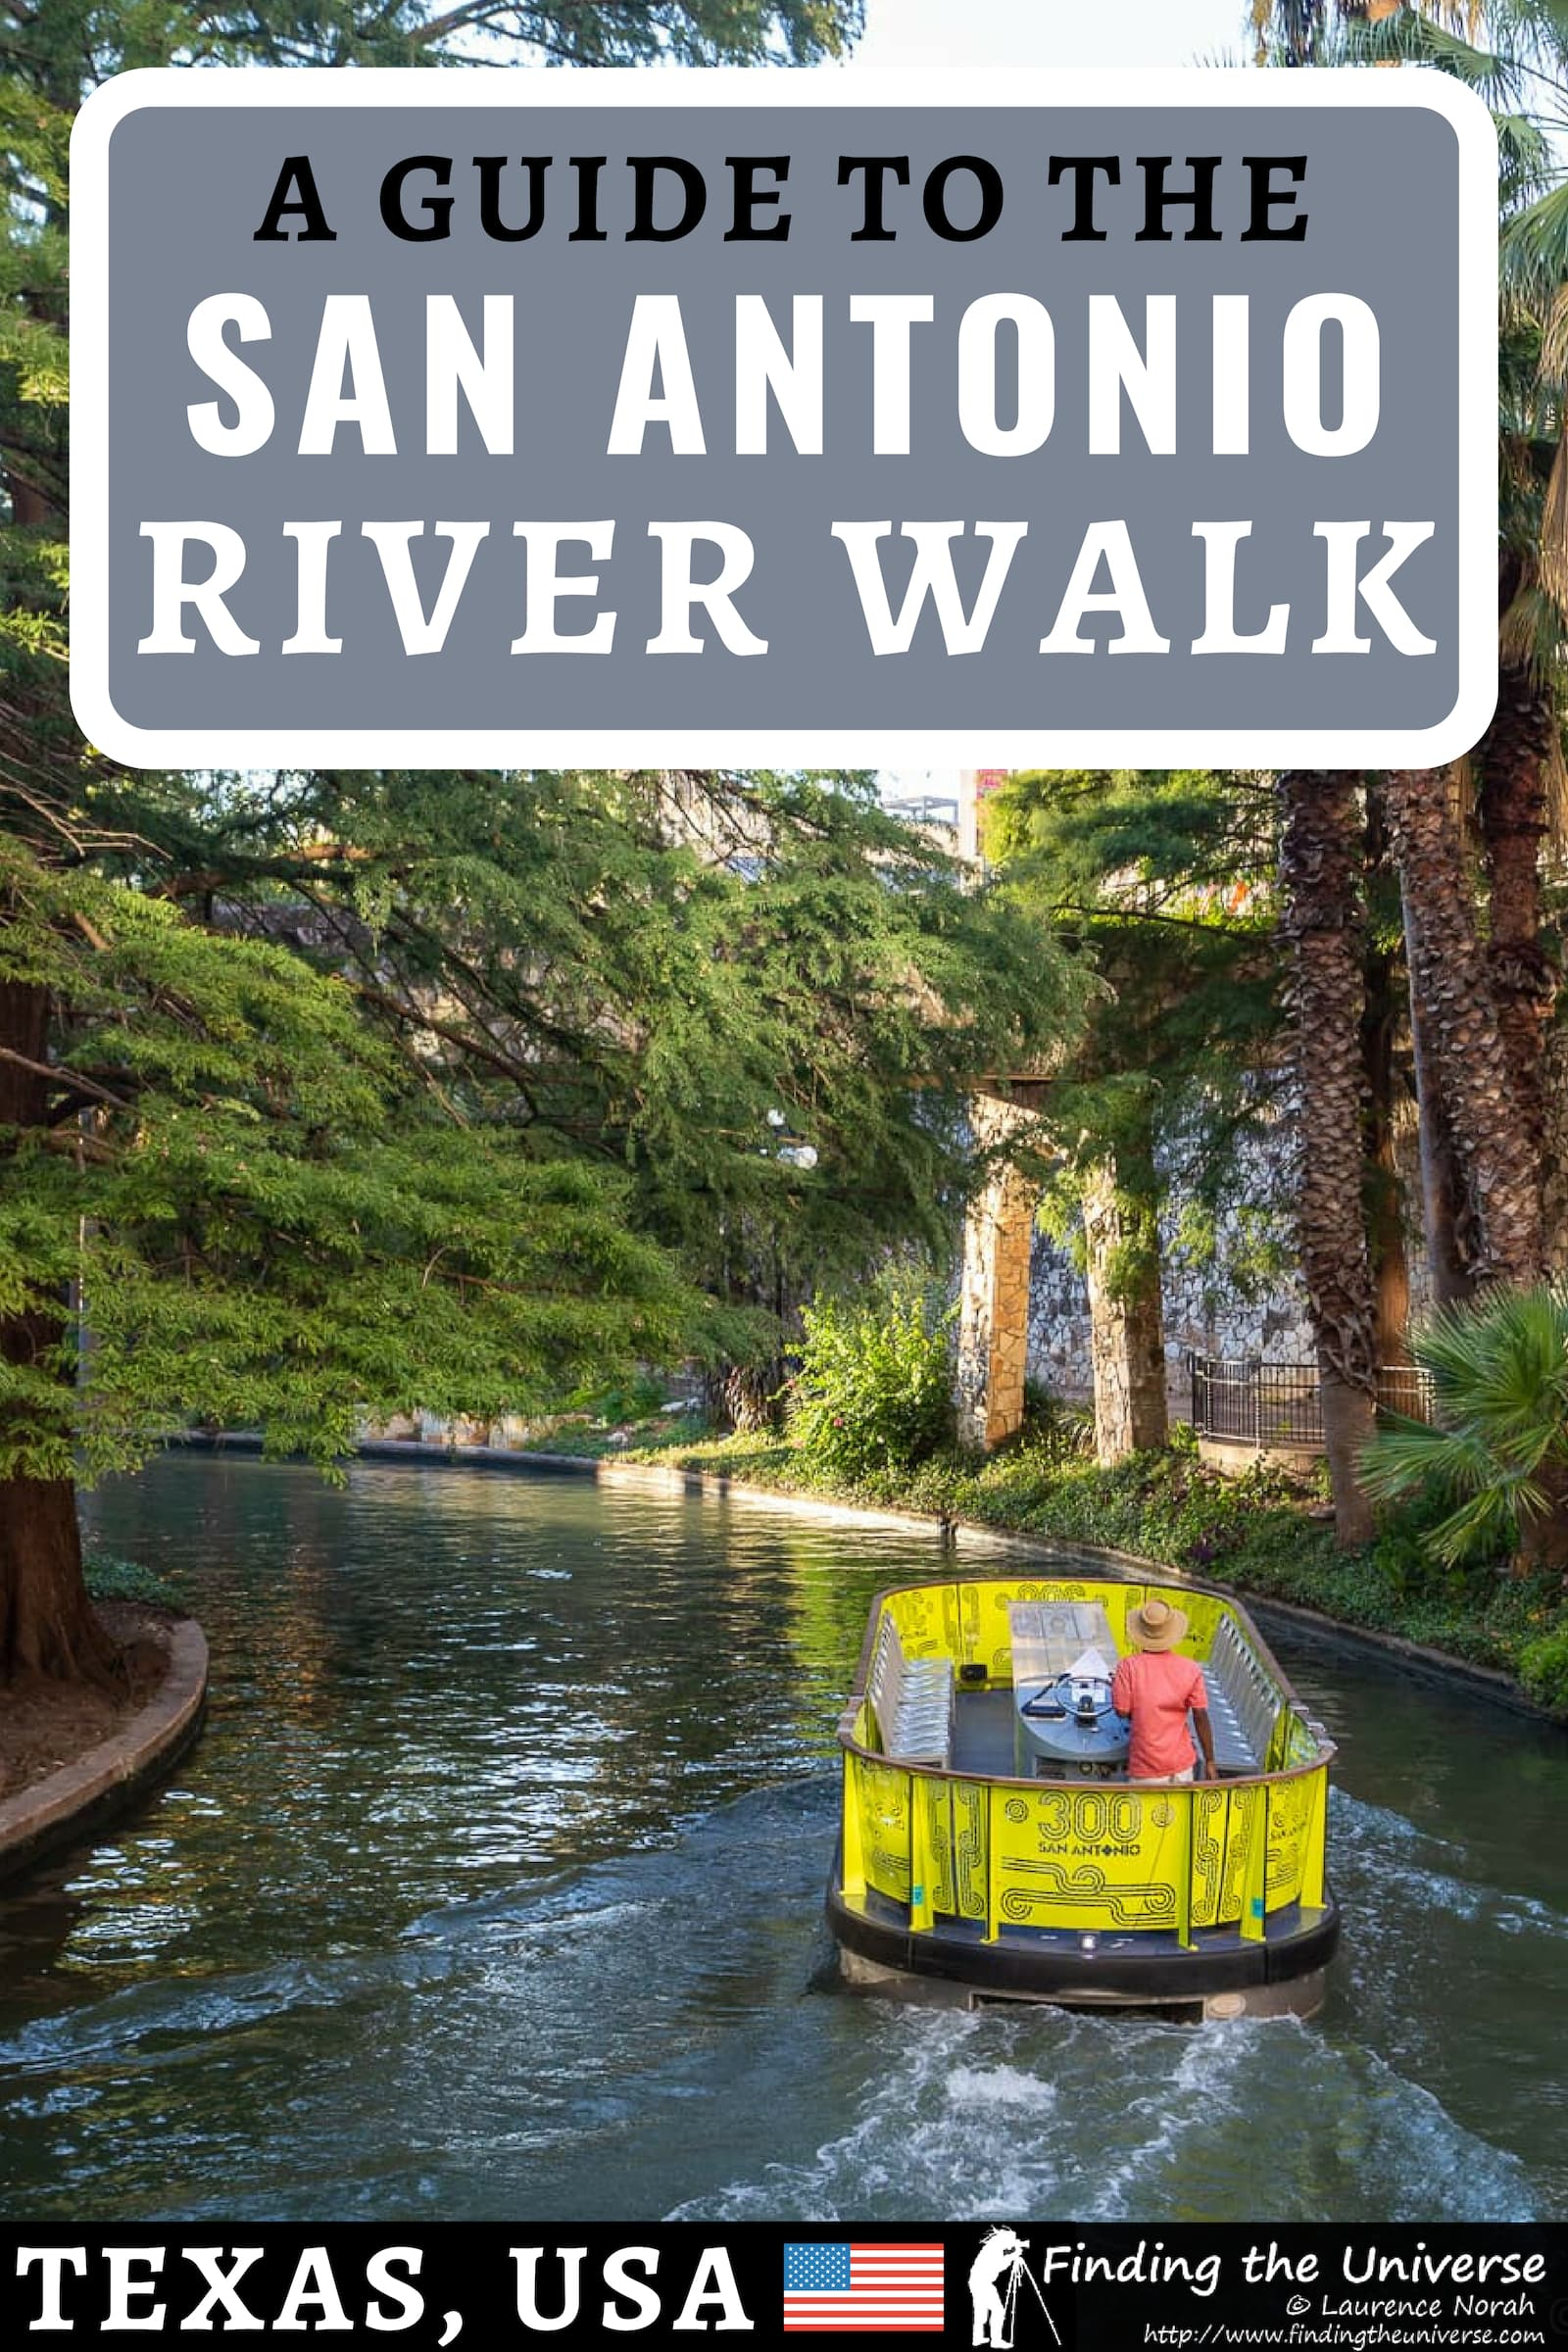 A detailed guide to visiting the San Antonio River Walk, Texas. Includes what to see and do on the river walk, where to stay and where to eat! #texas #travel